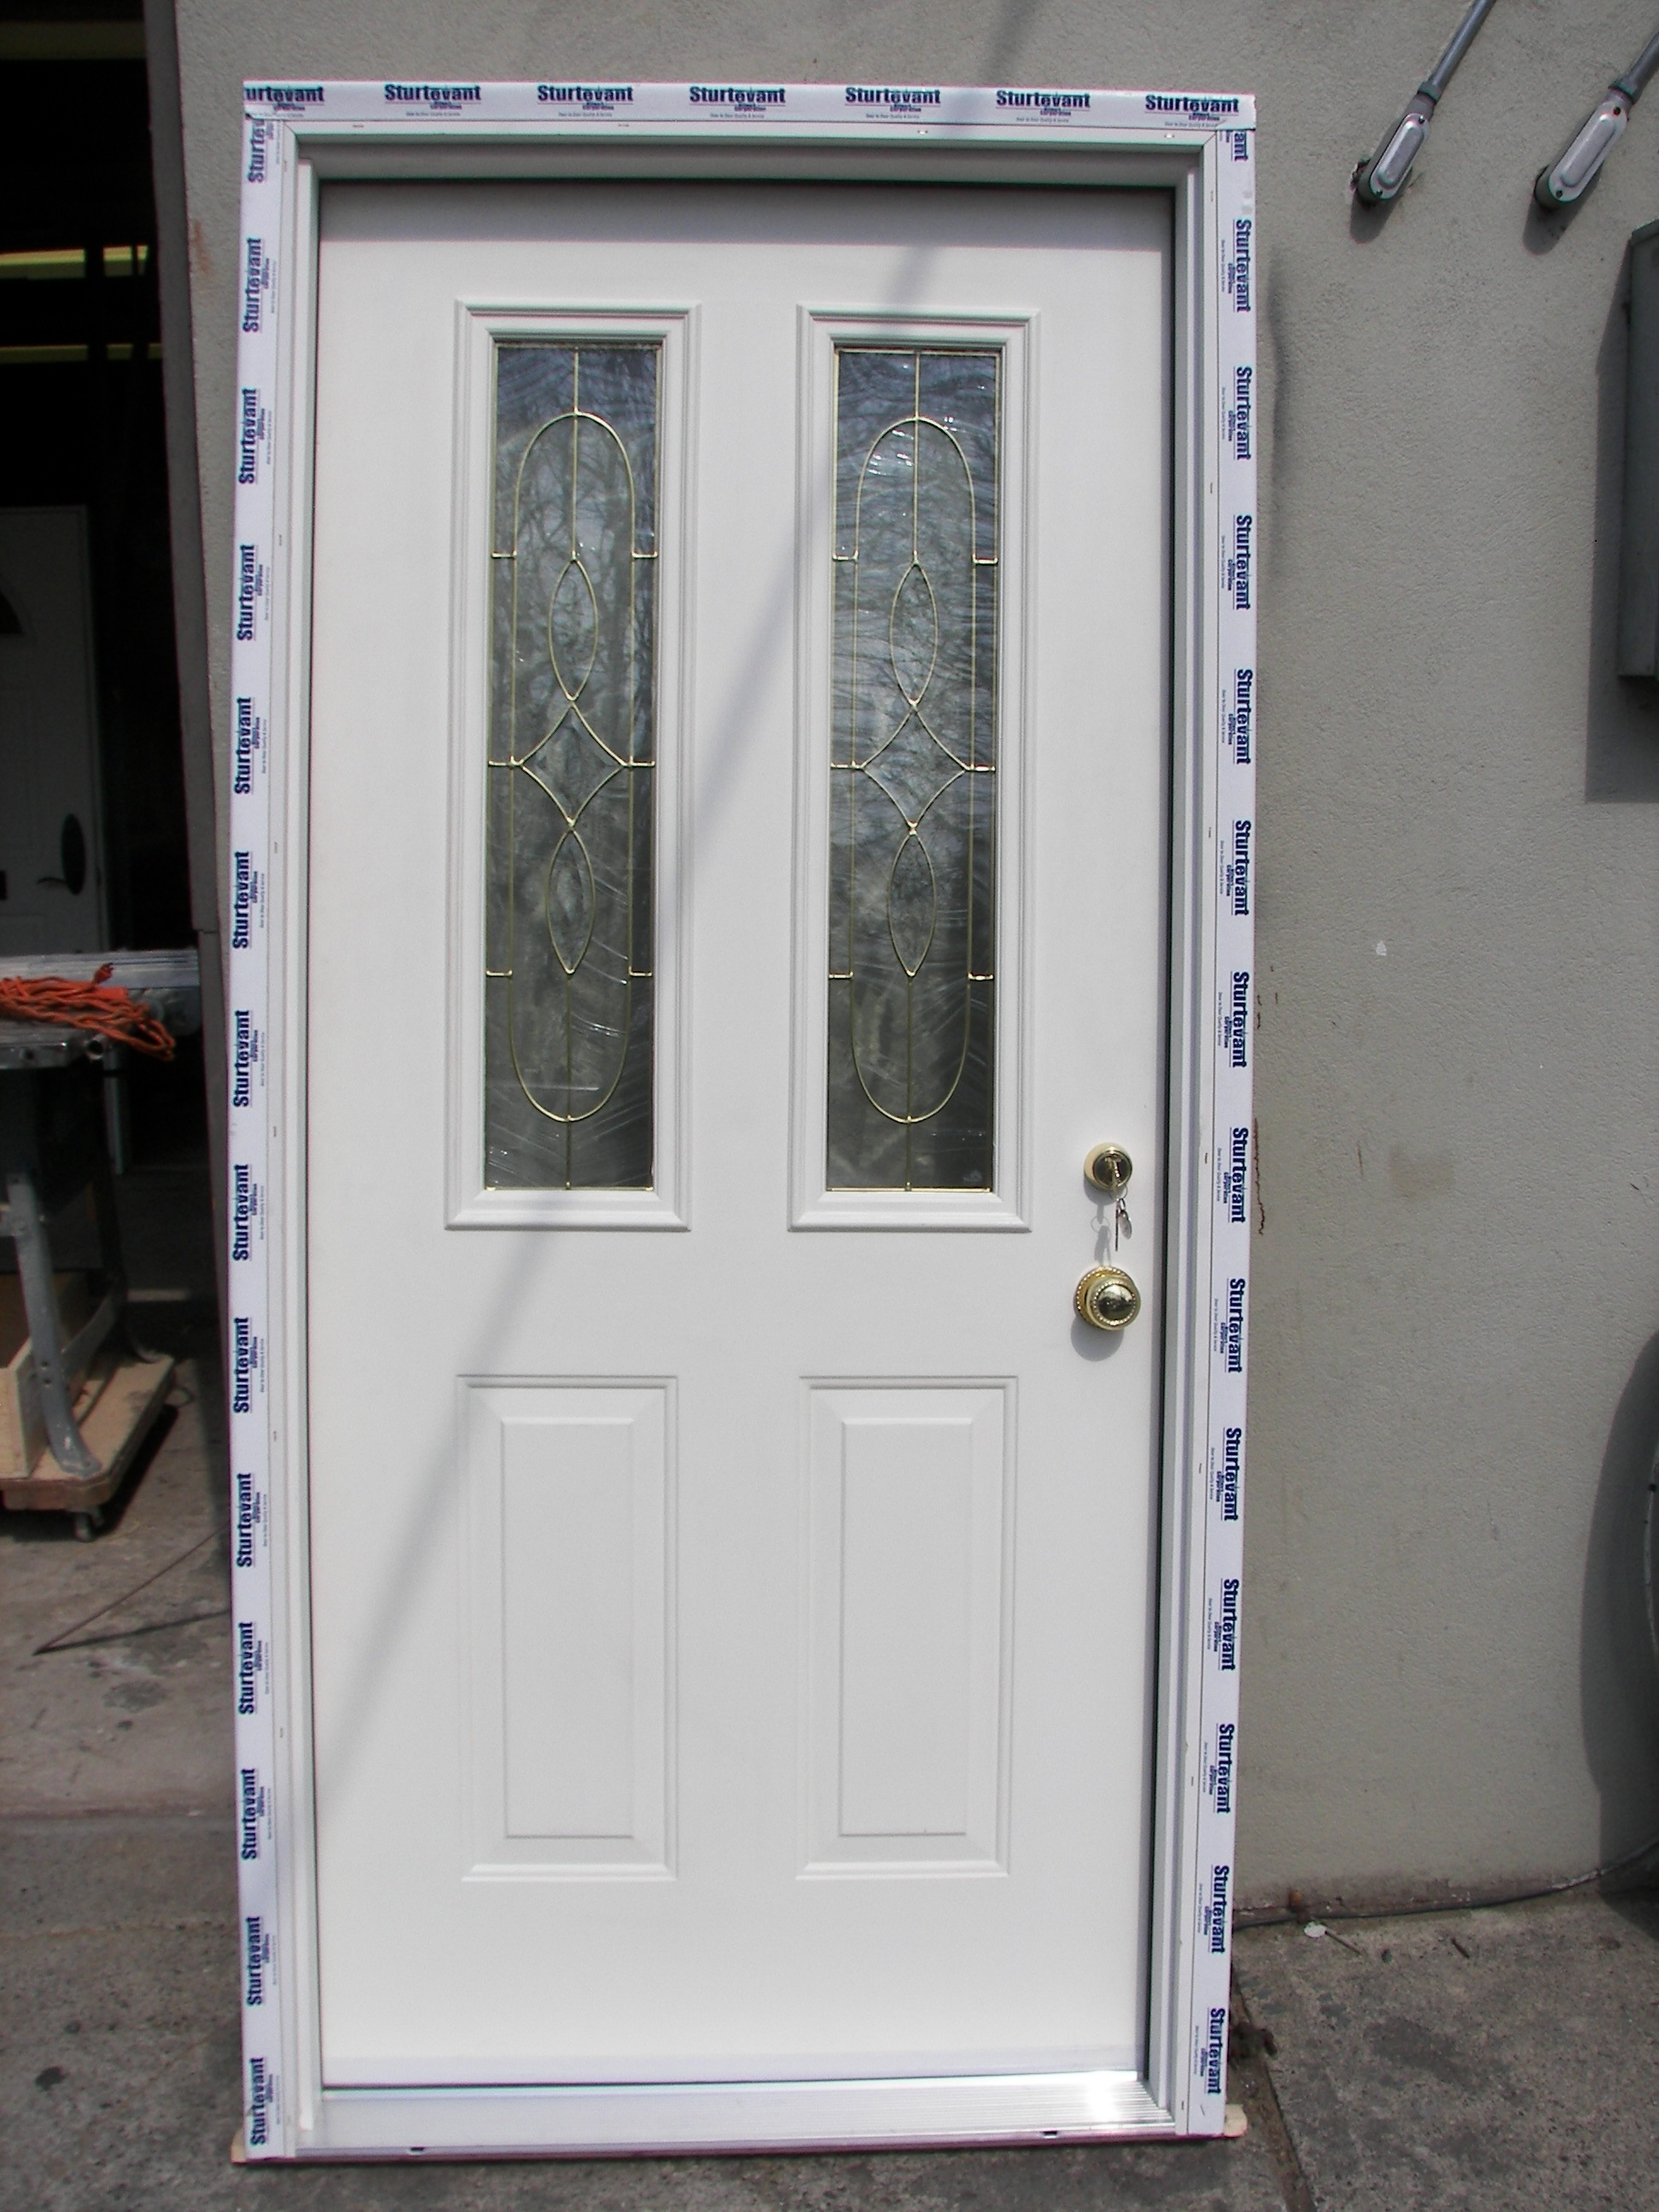 Door Comes With 1 Set of Mahogany Casing This Door Comes From a Renovation Sold AS IS. Priced To Sell @ $759.00 !! & $500- $999 u2013 North Jersey Door